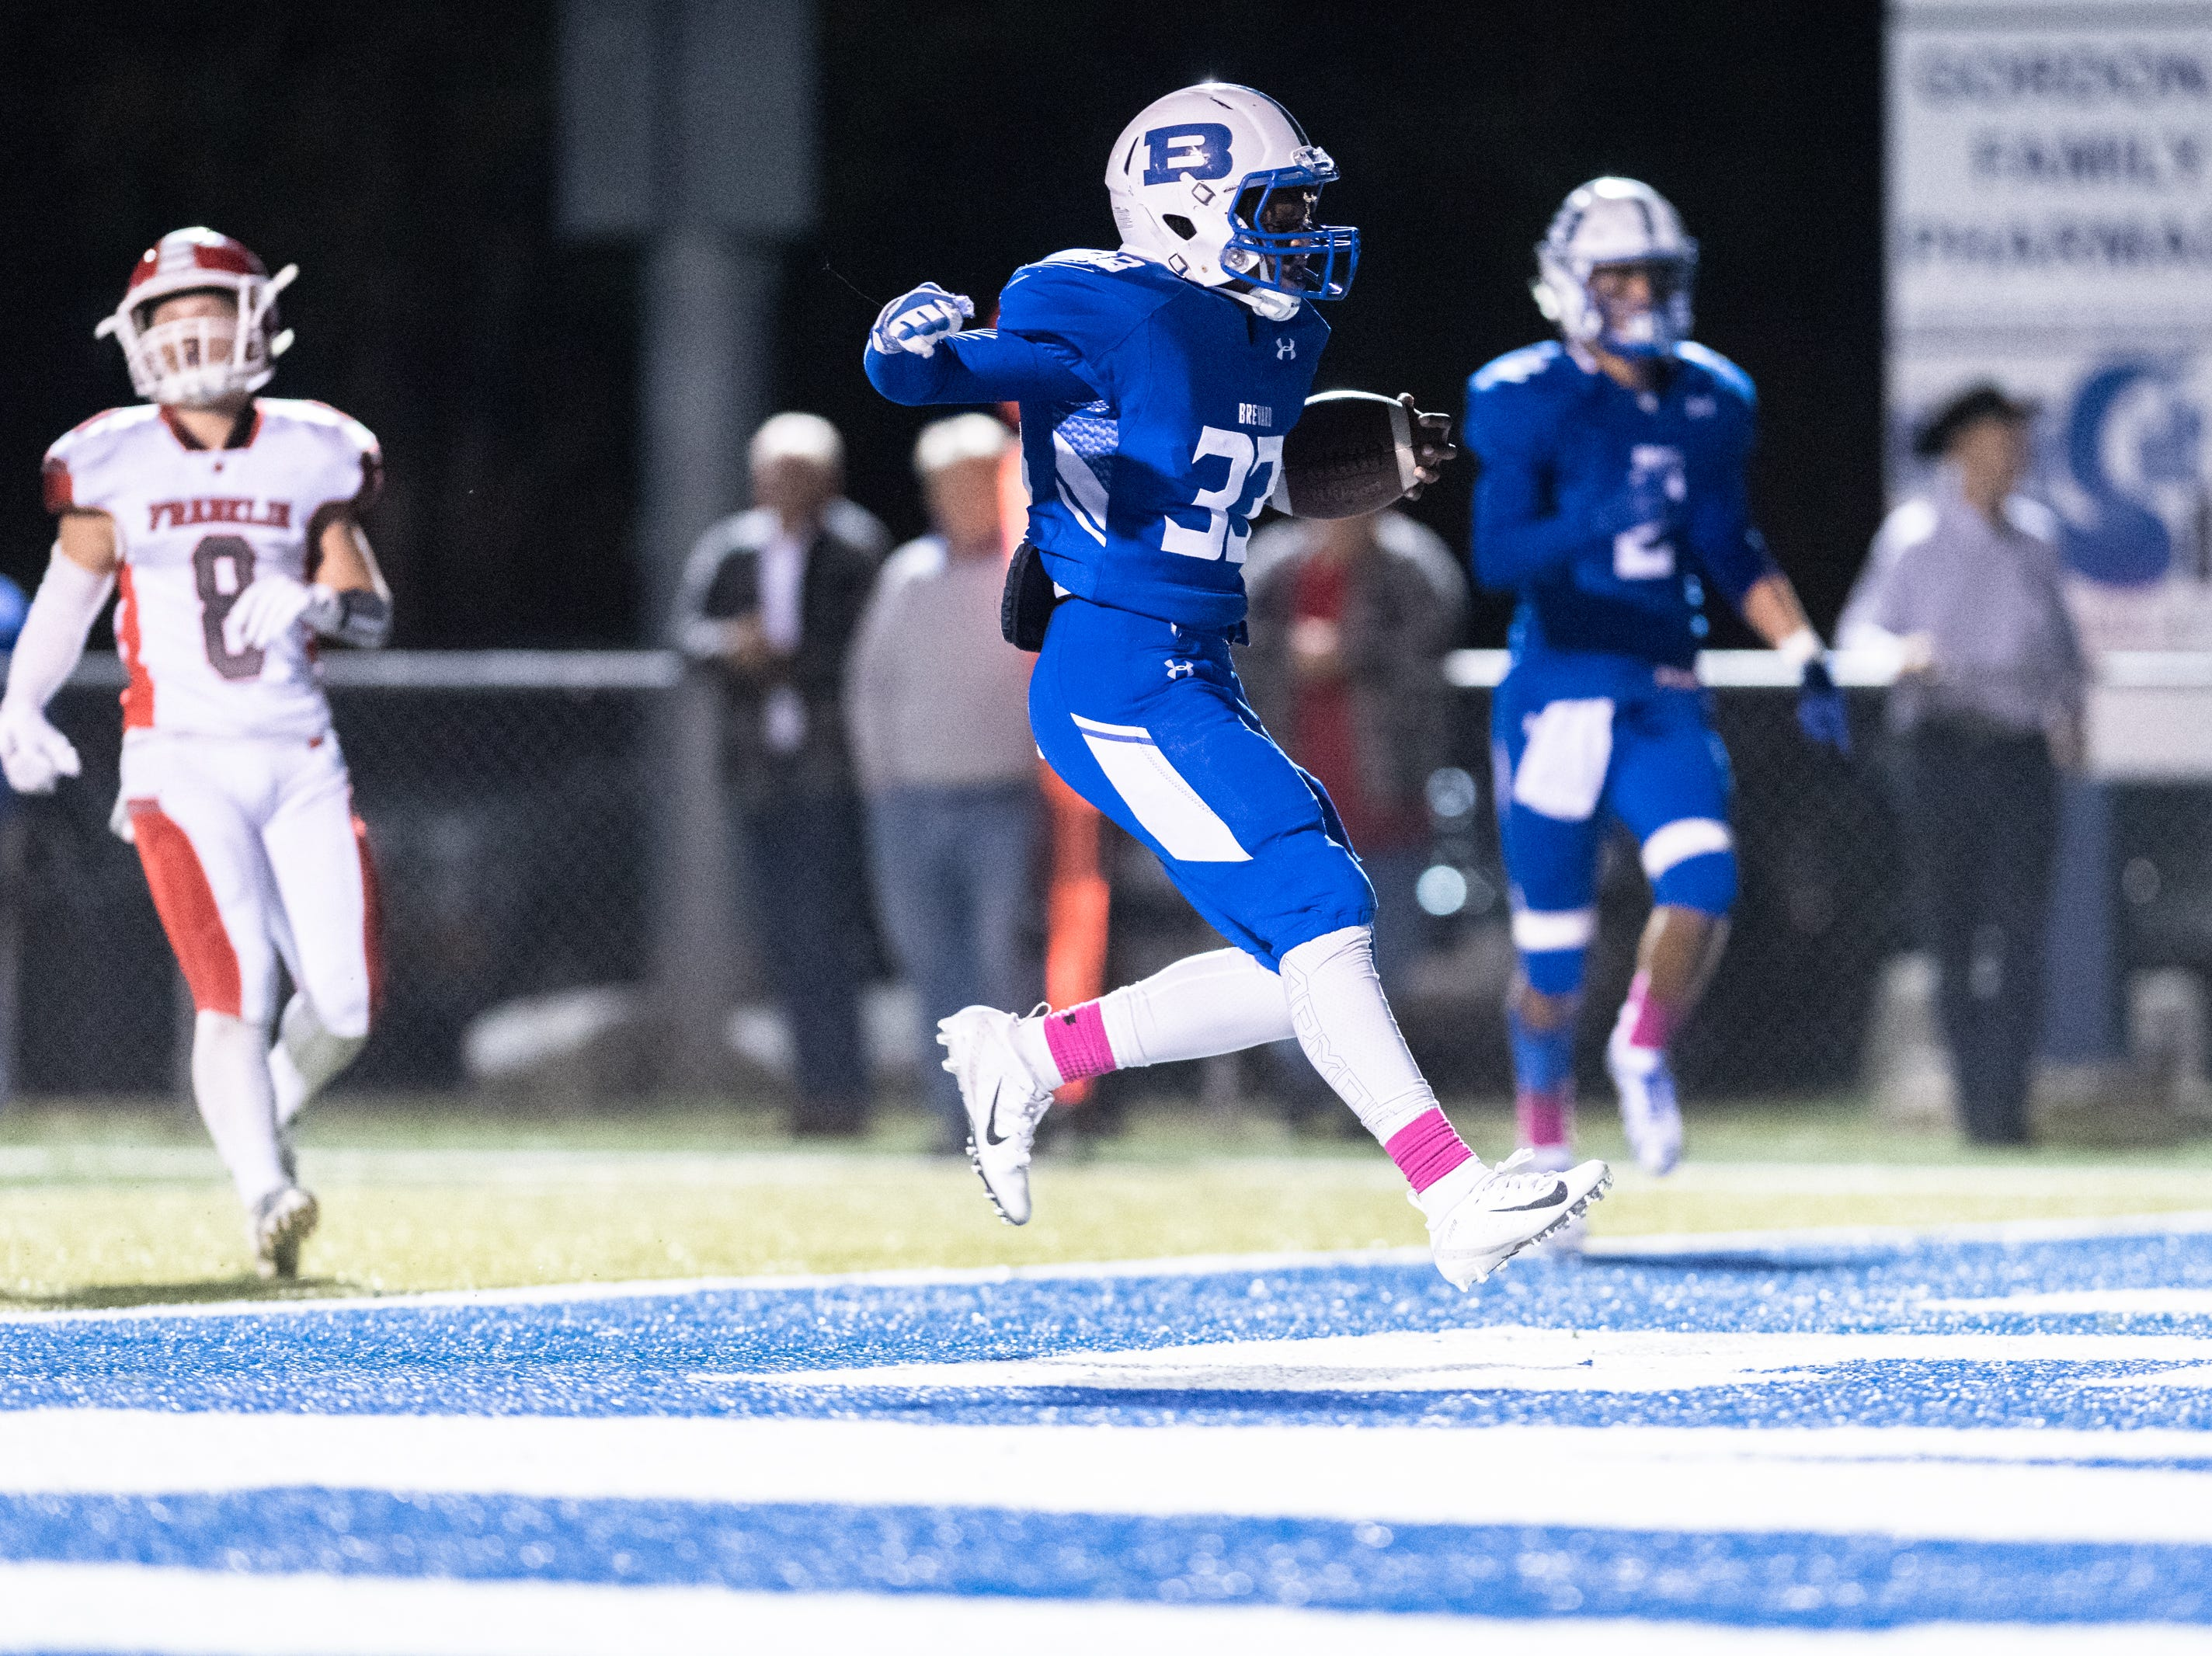 Brevard's D.K Deshauteurs runs into the endzone for a touchdown during their Friday night football game against Franklin, Oct. 12, 2018.